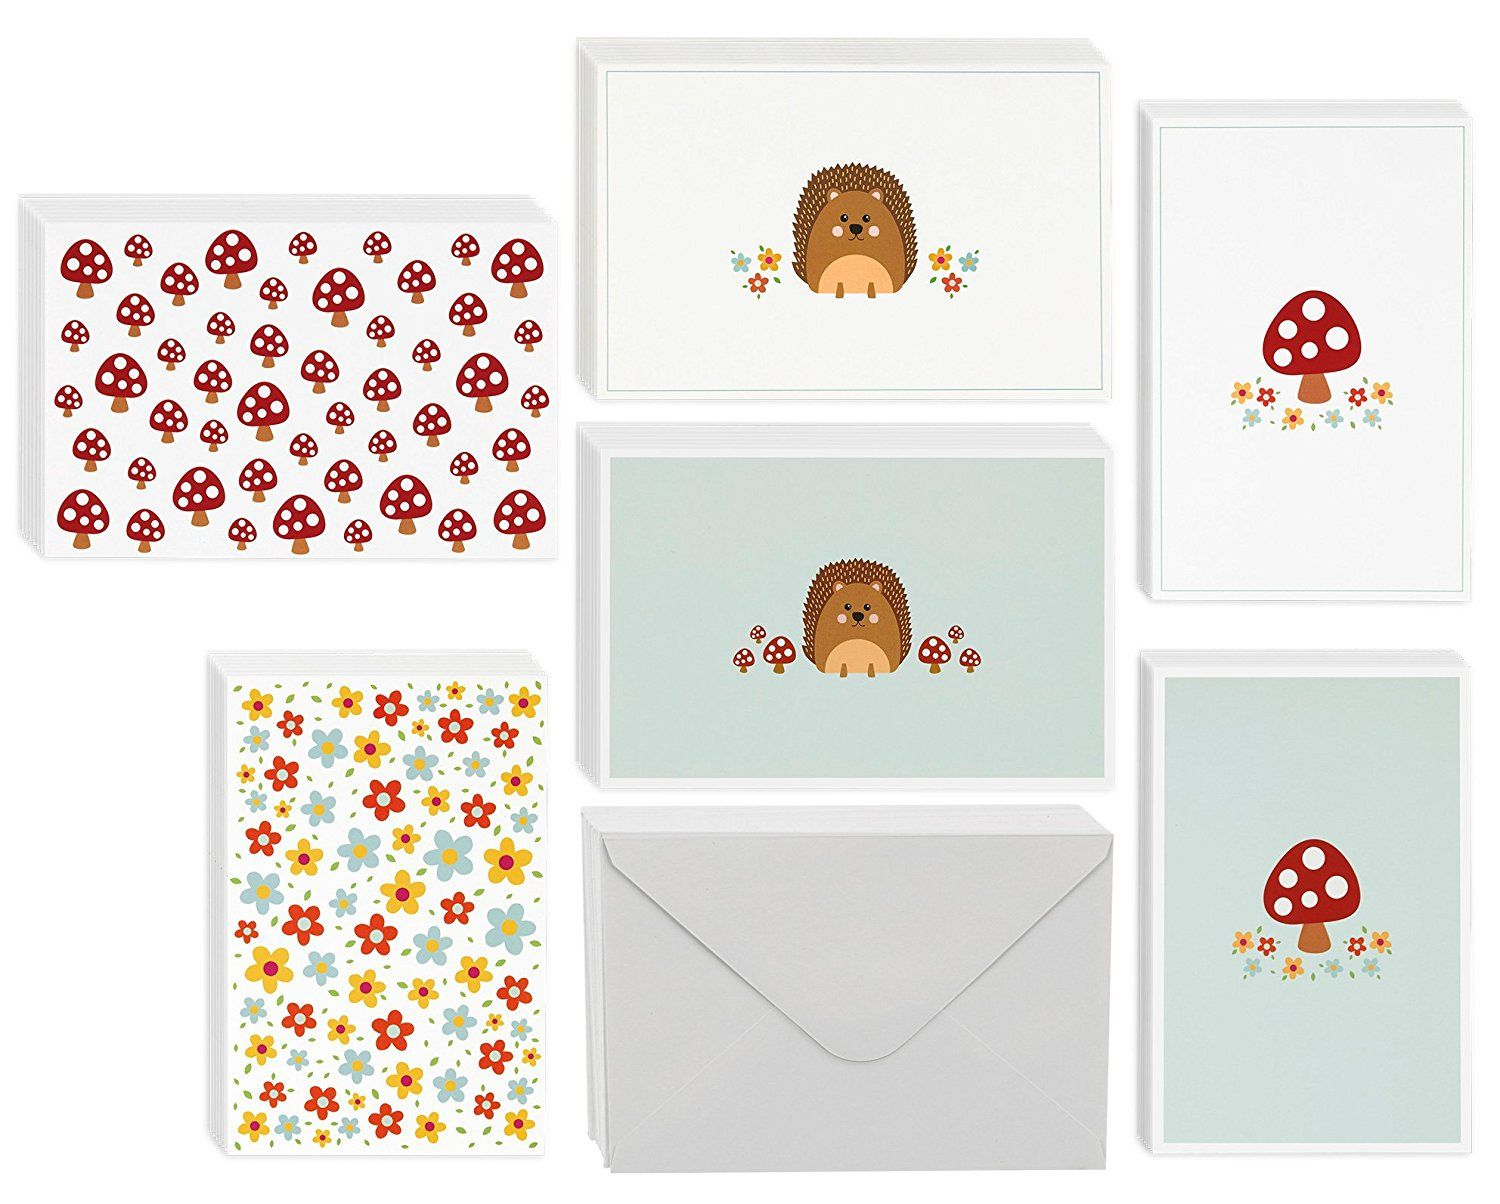 Every Occasion Blank Greeting Cards Bulk Box Set 6 Cute Illustrations Of Hedgehogs Mushrooms And Flowers For Kids Cards Cute Illustration Valentine Gifts